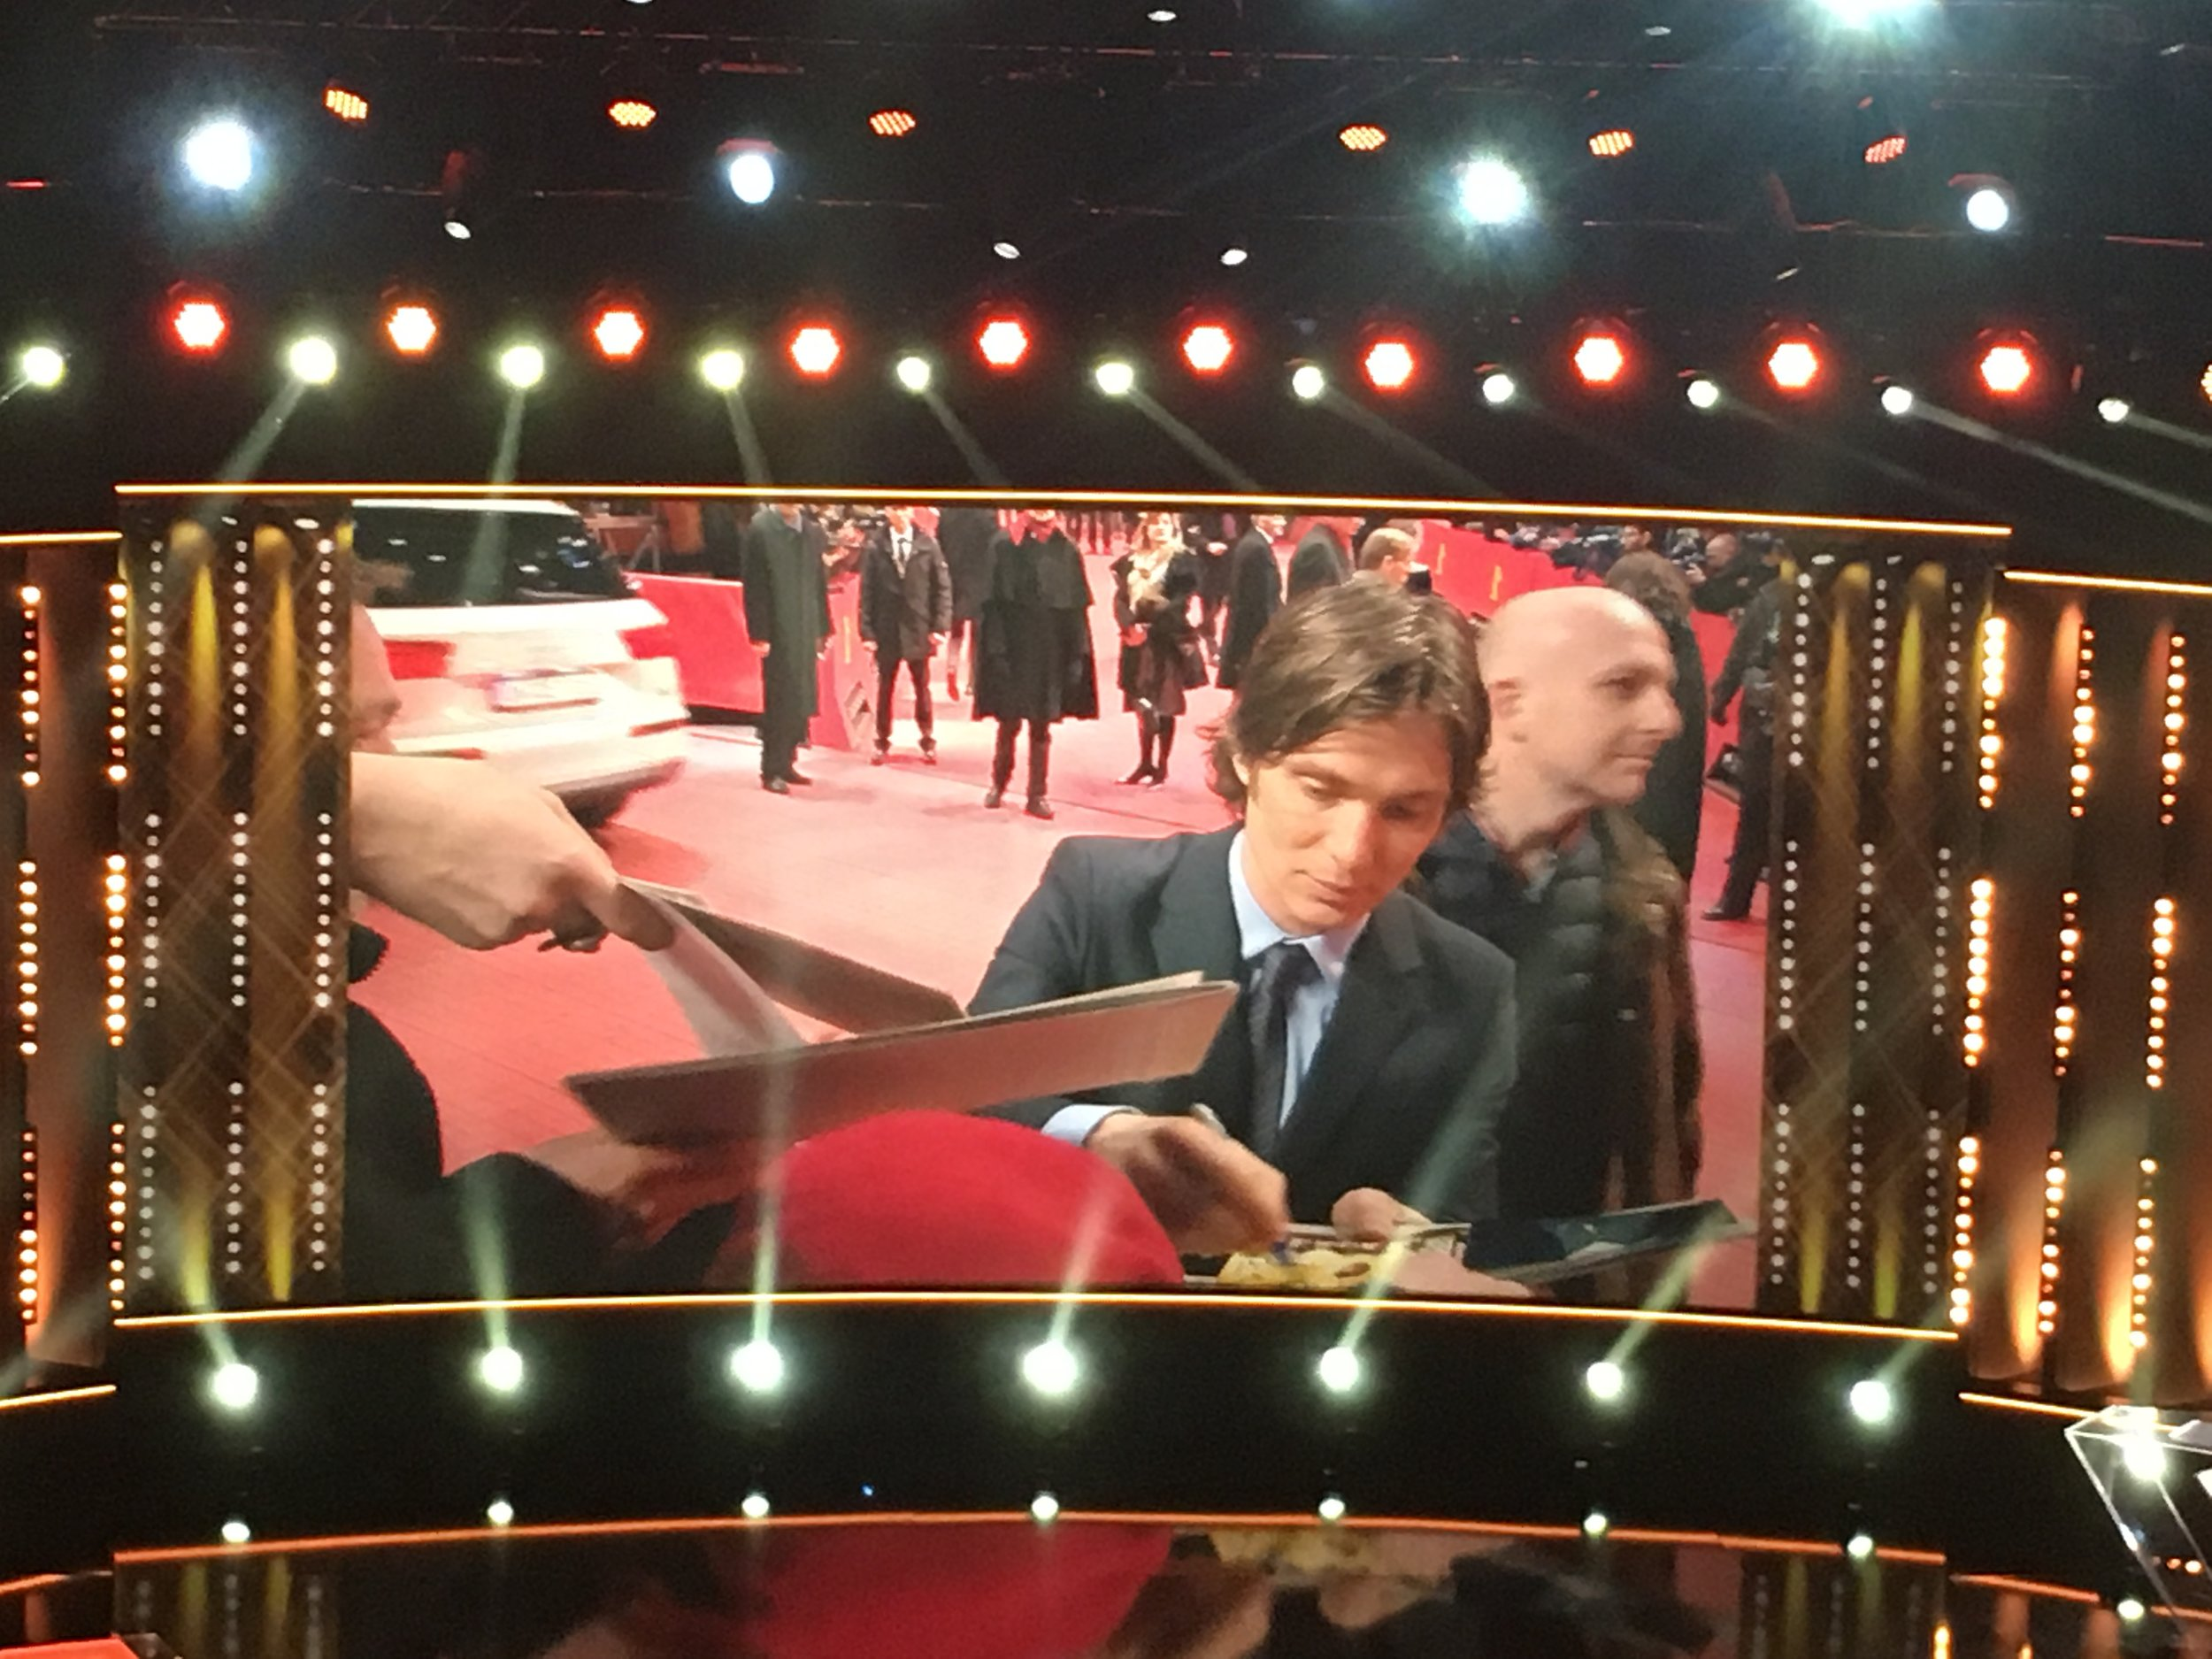 Cillian Murphy signs autographs in sub-zero temperatures at the Berlinale premiere of Sally Potter's  The Party  (from inside the Filmpalast)